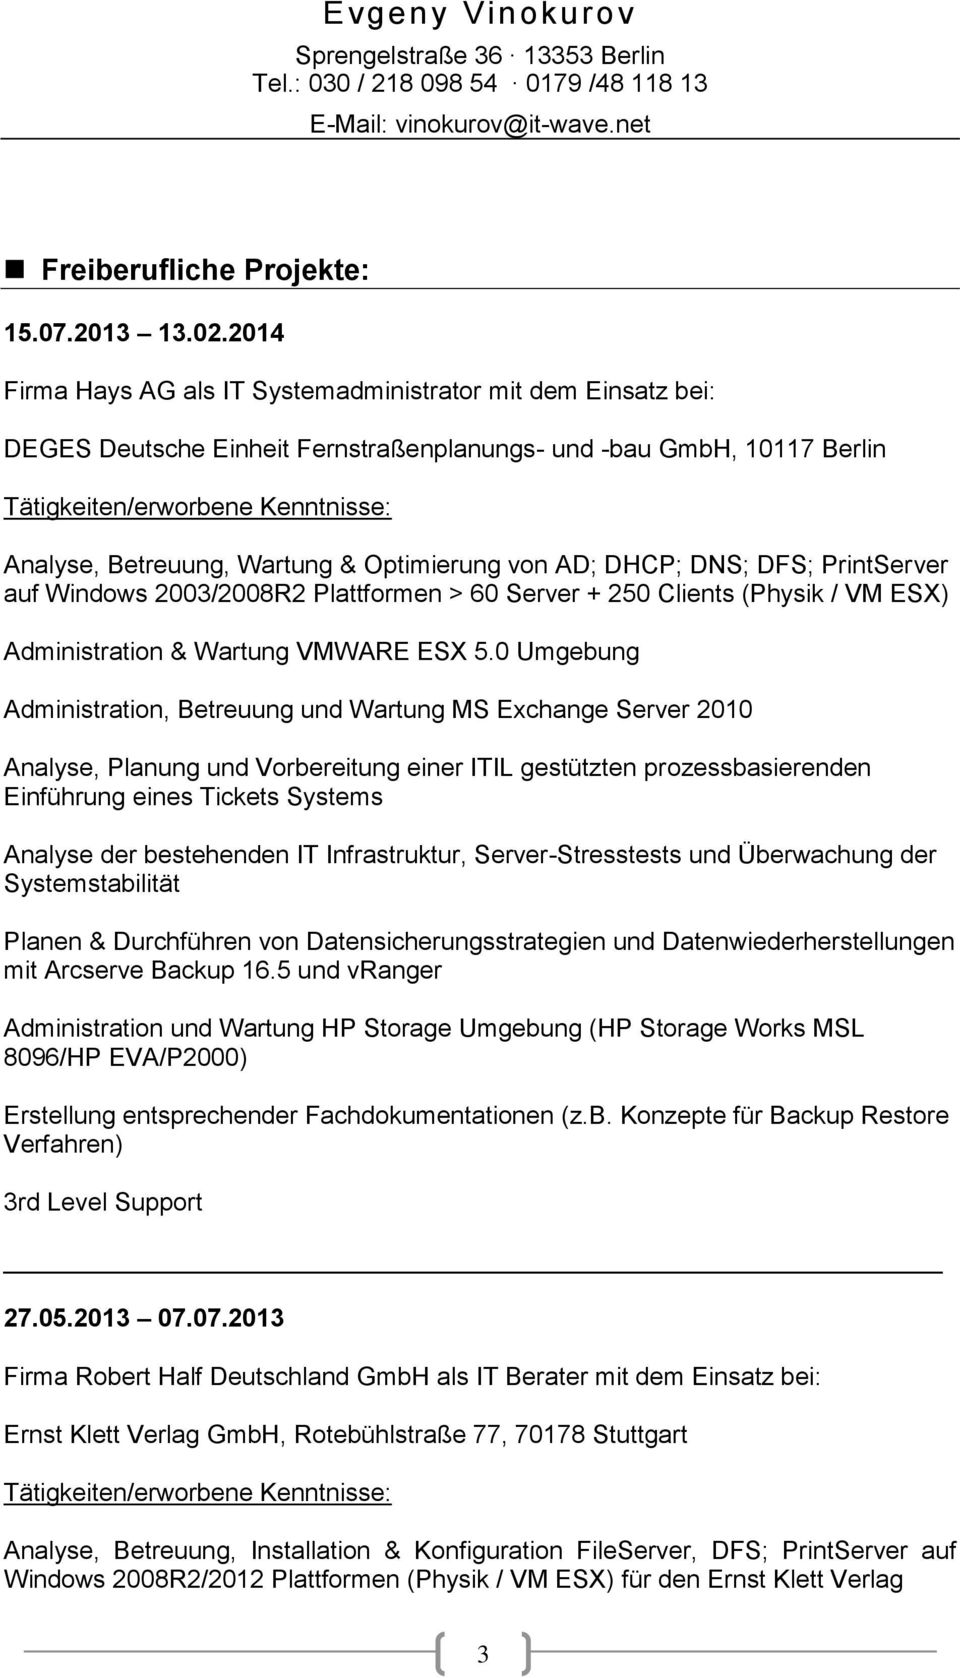 Wartung & Optimierung von AD; DHCP; DNS; DFS; PrintServer auf Windows 2003/2008R2 Plattformen > 60 Server + 250 Clients (Physik / VM ESX) Administration & Wartung VMWARE ESX 5.